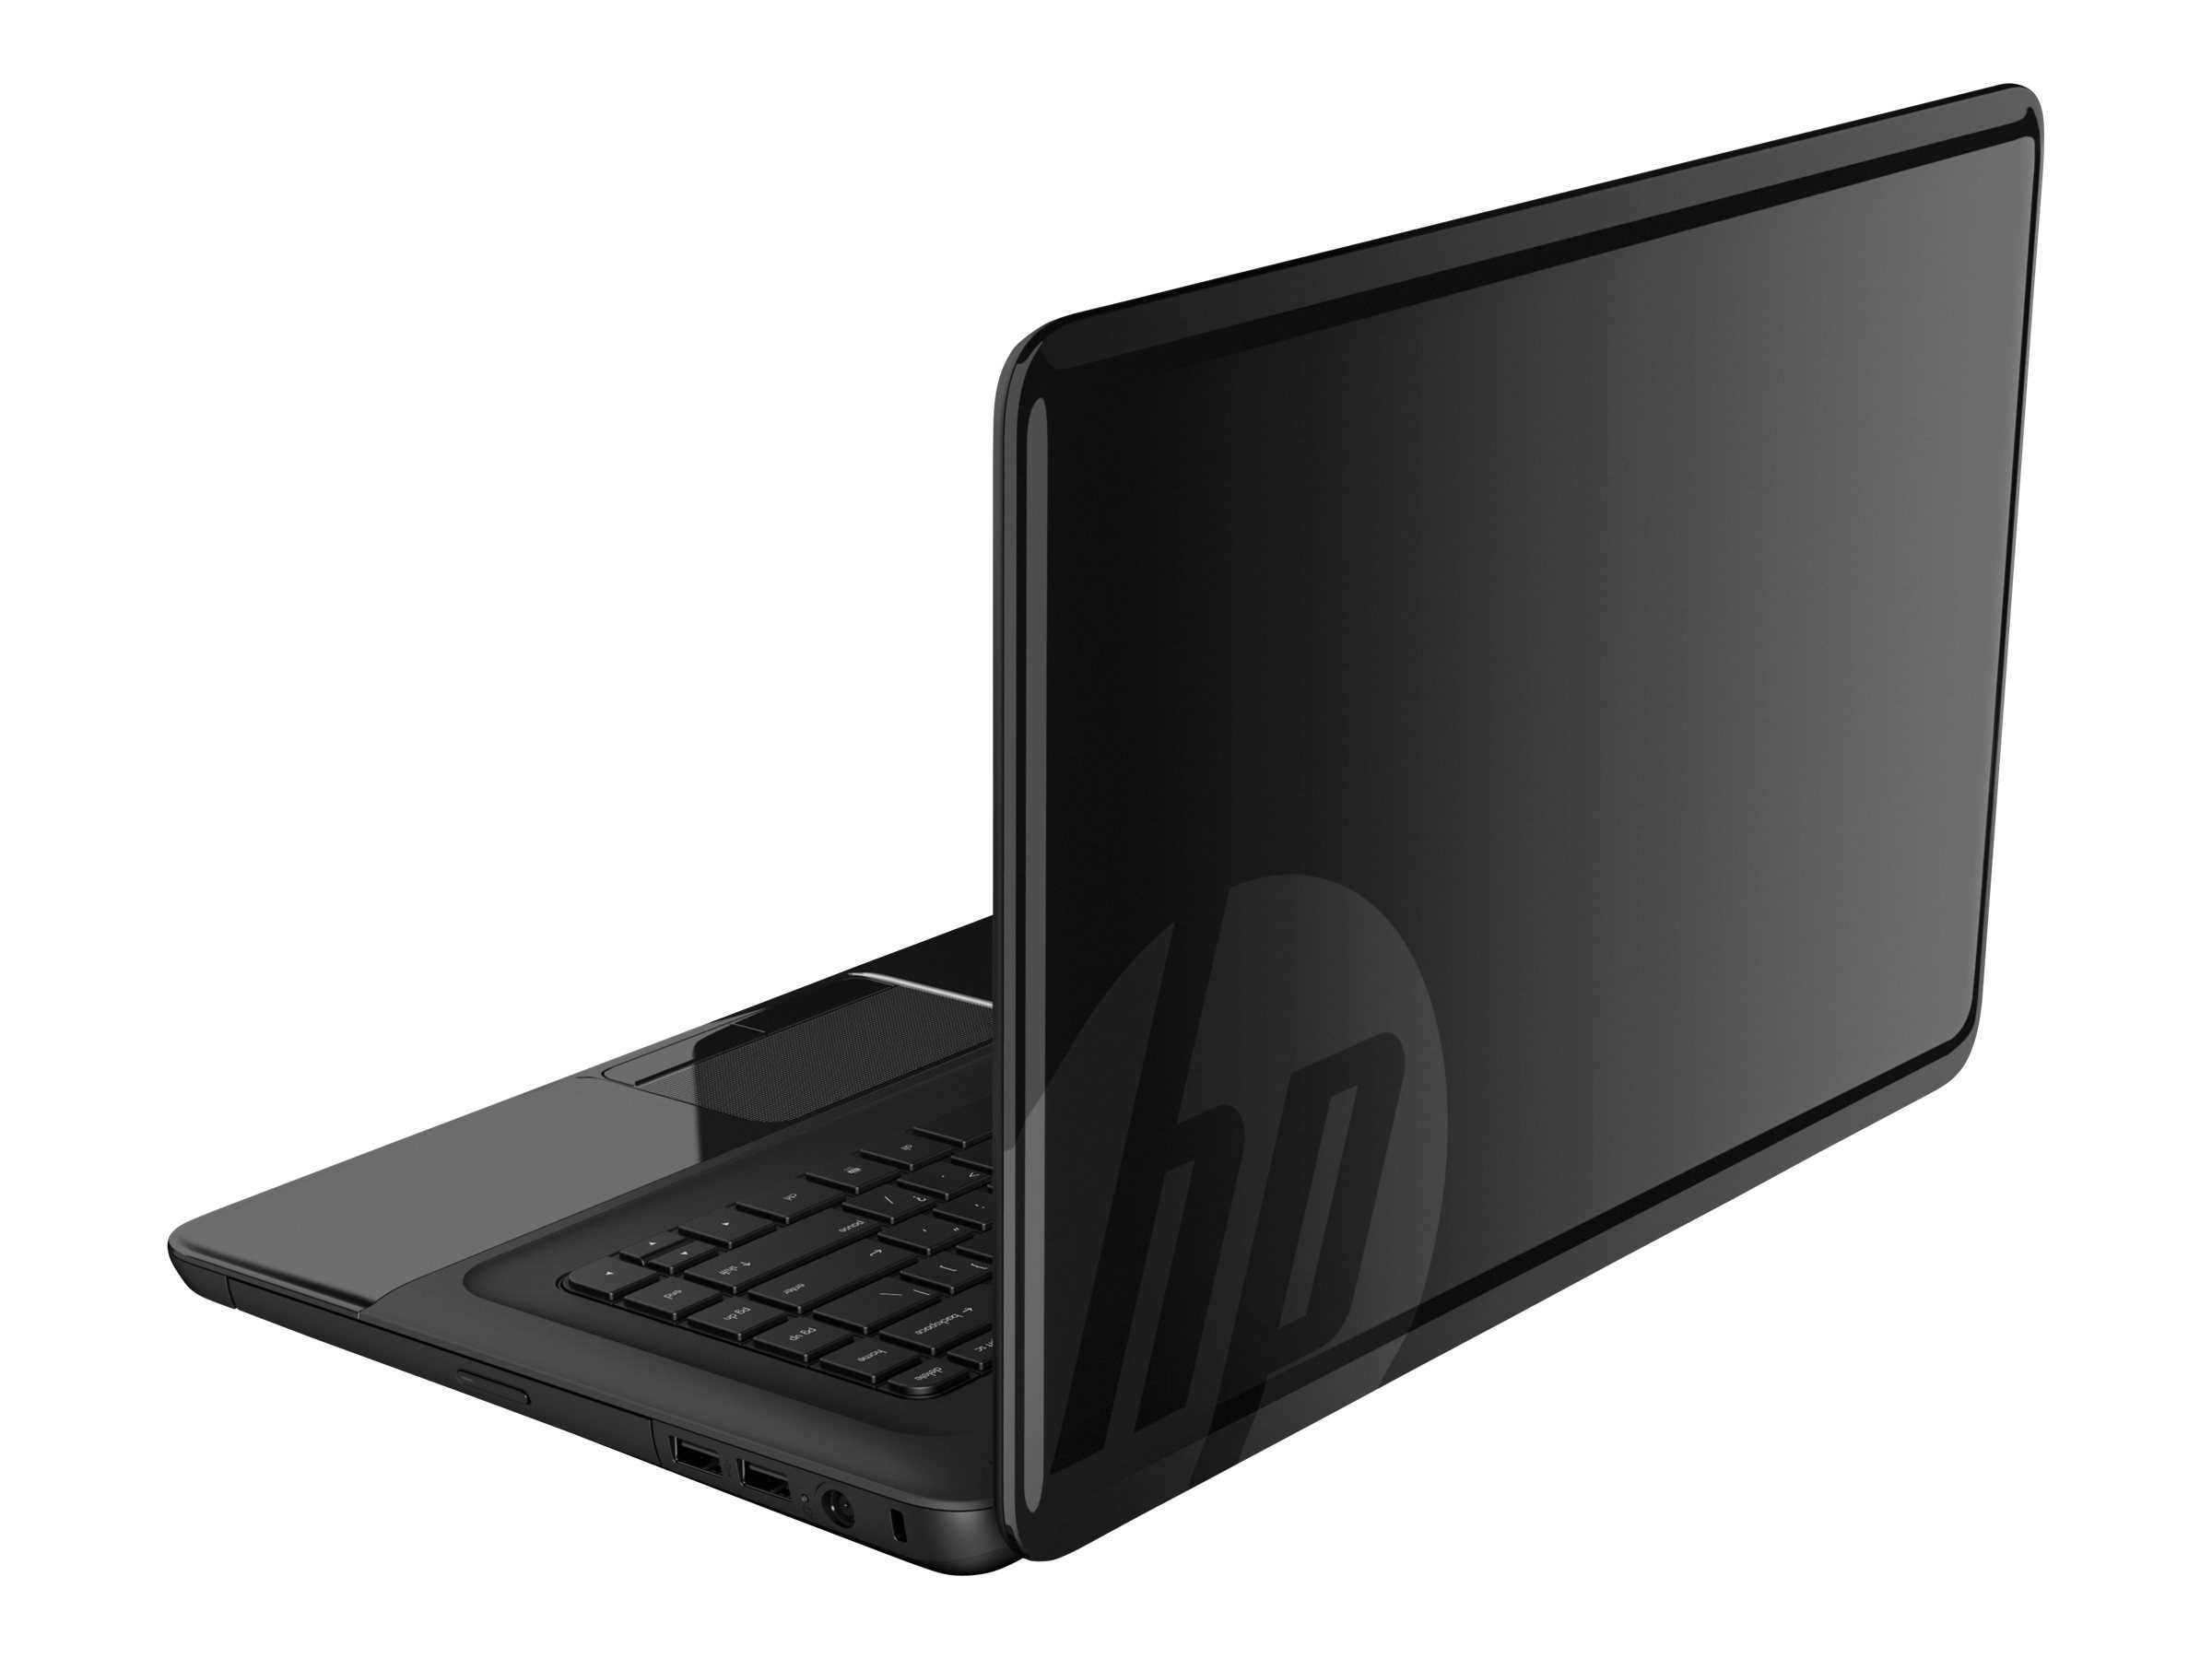 HP 2000-2B24nr Notebook